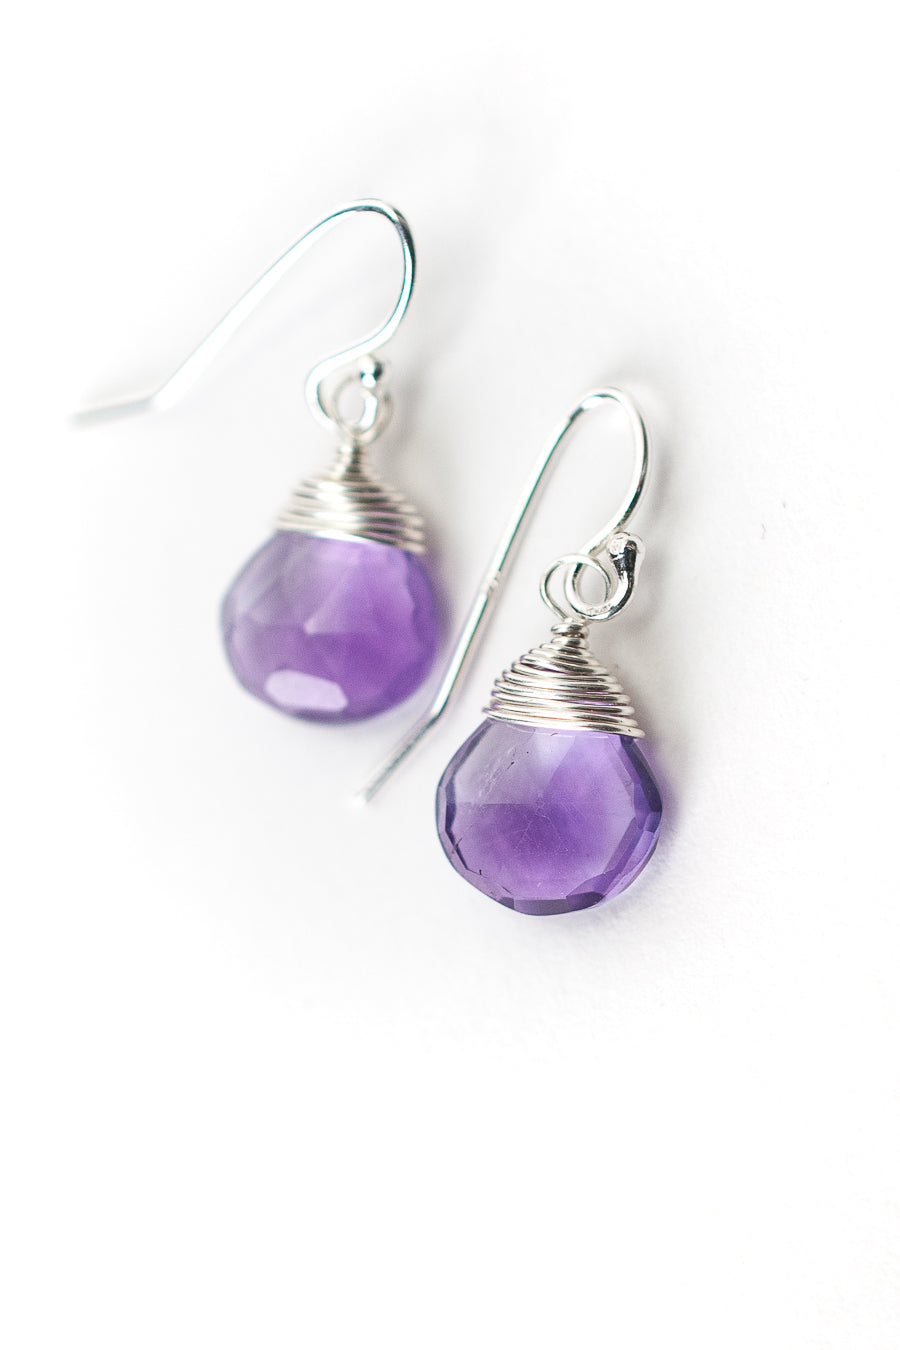 Birthstone February Silver Amethyst Briolette Earrings